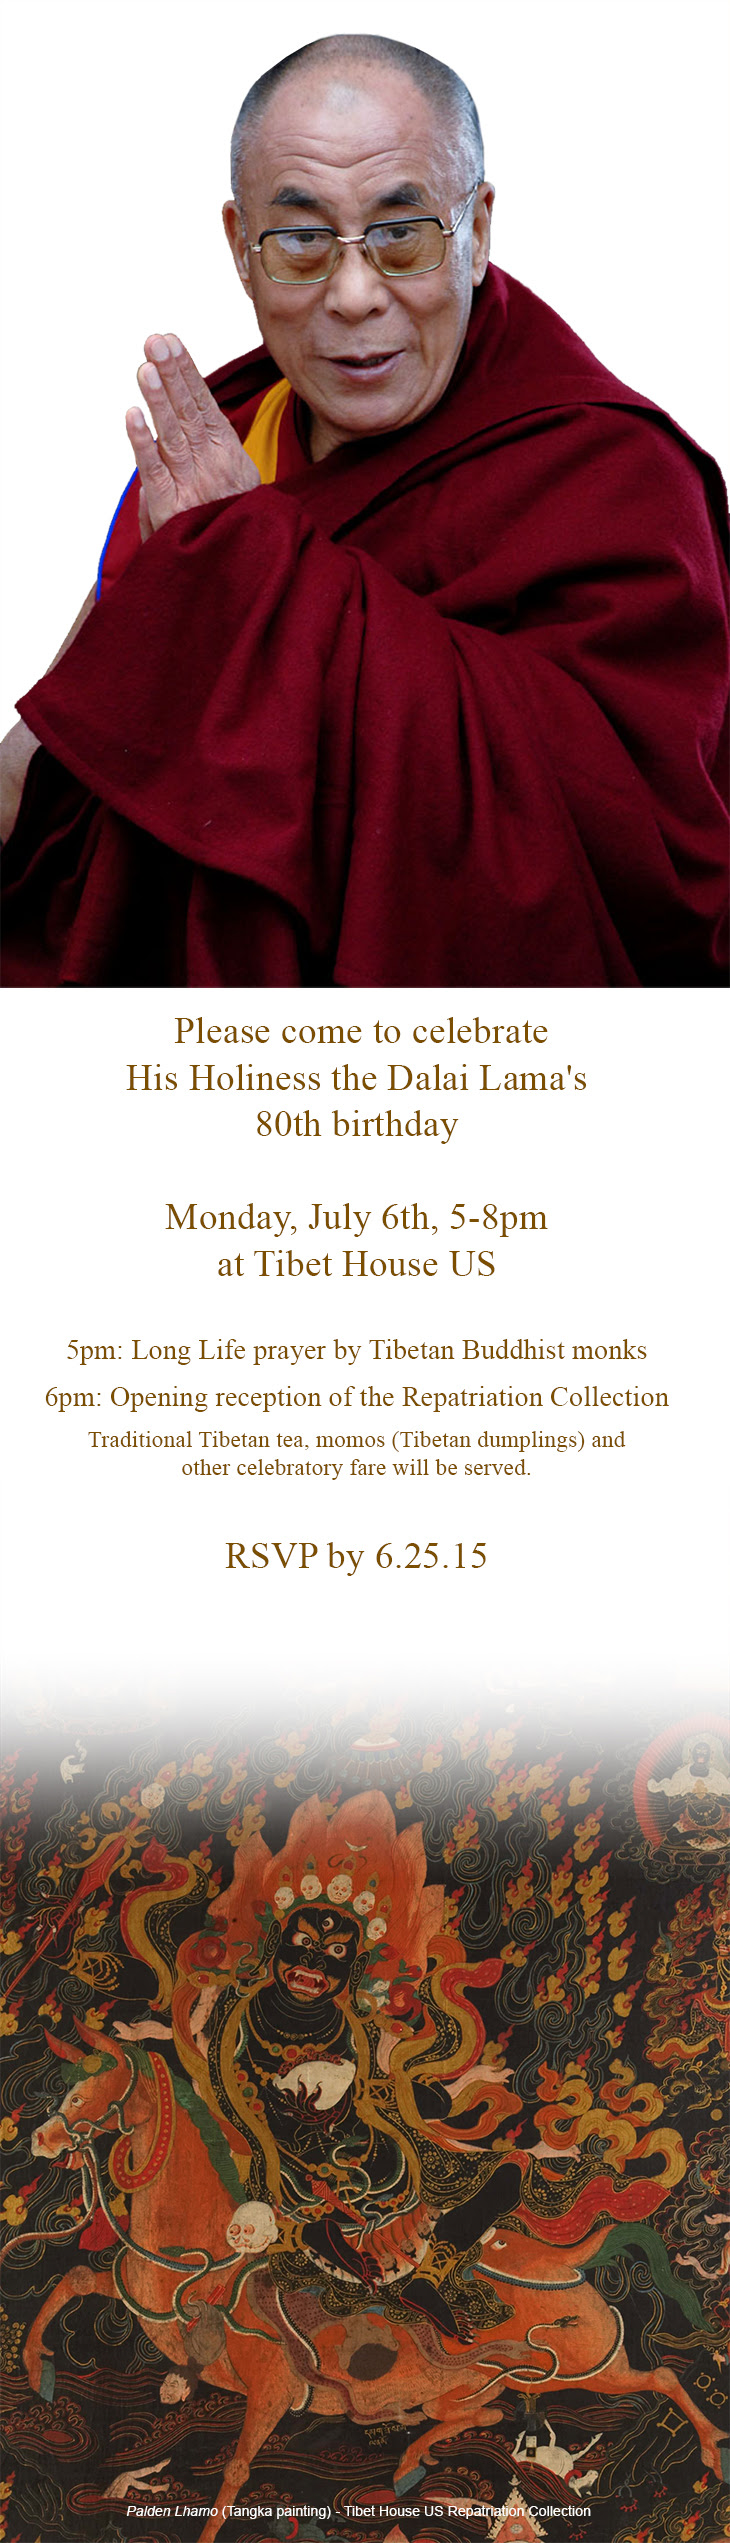 Please come celebrate His Holiness the Dalai Lama's 80th birthday